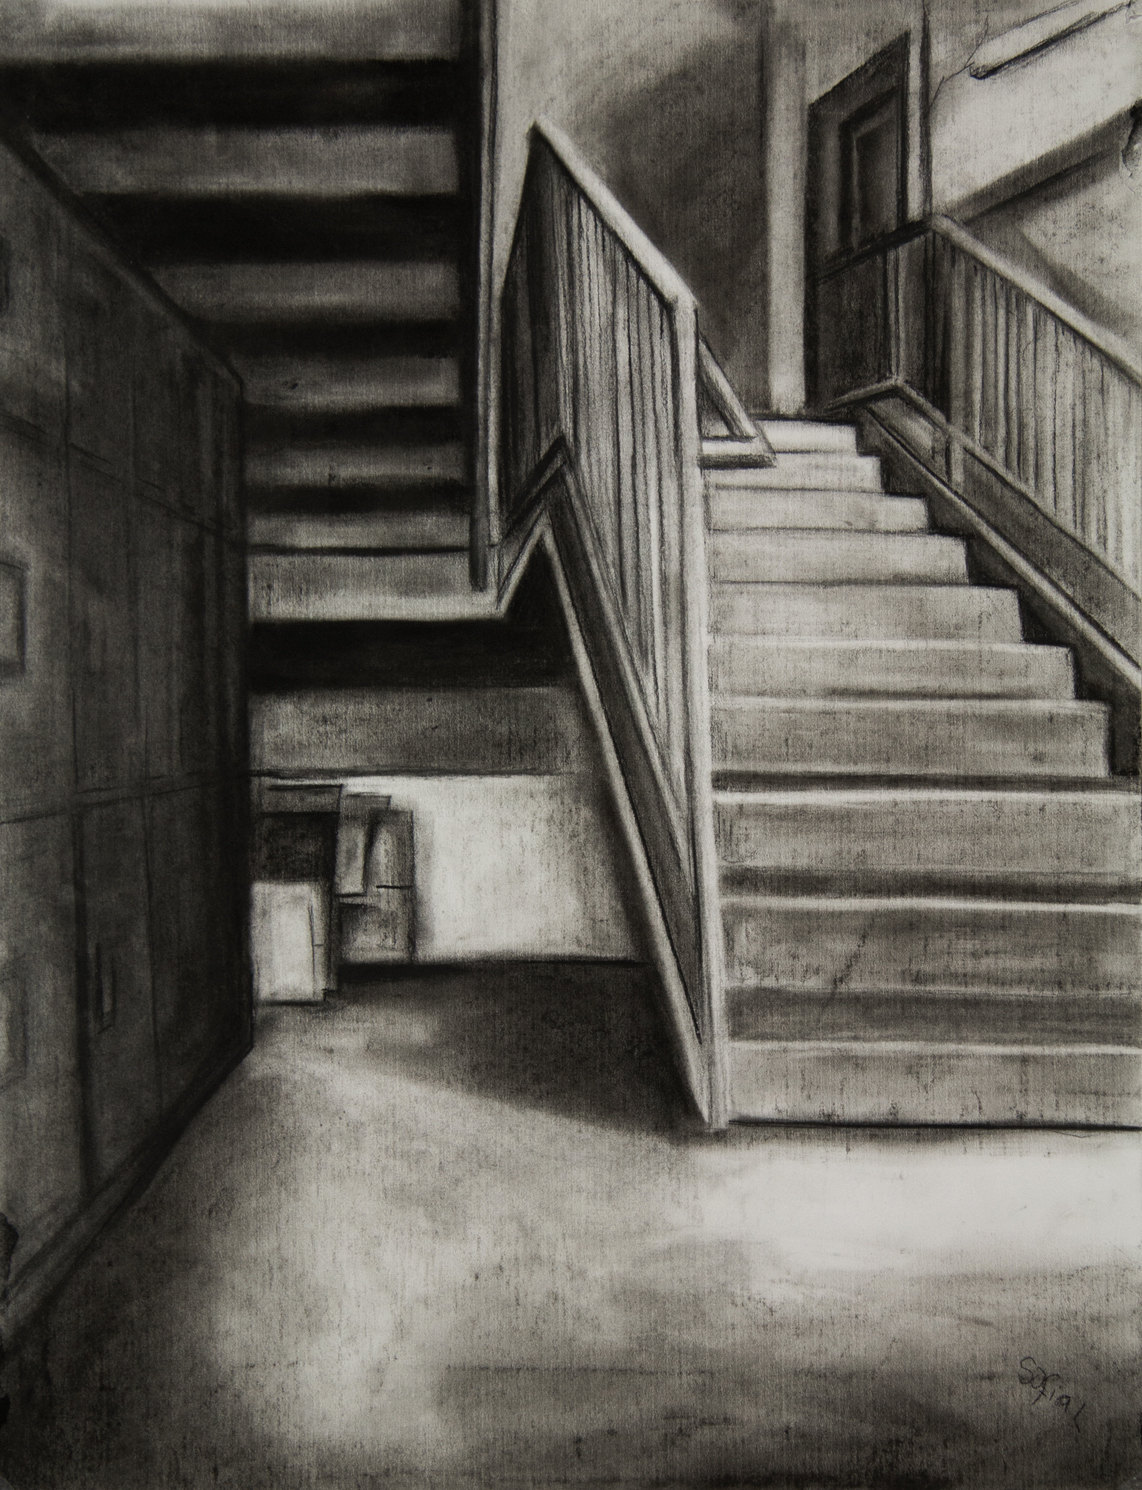 Eerie staircase